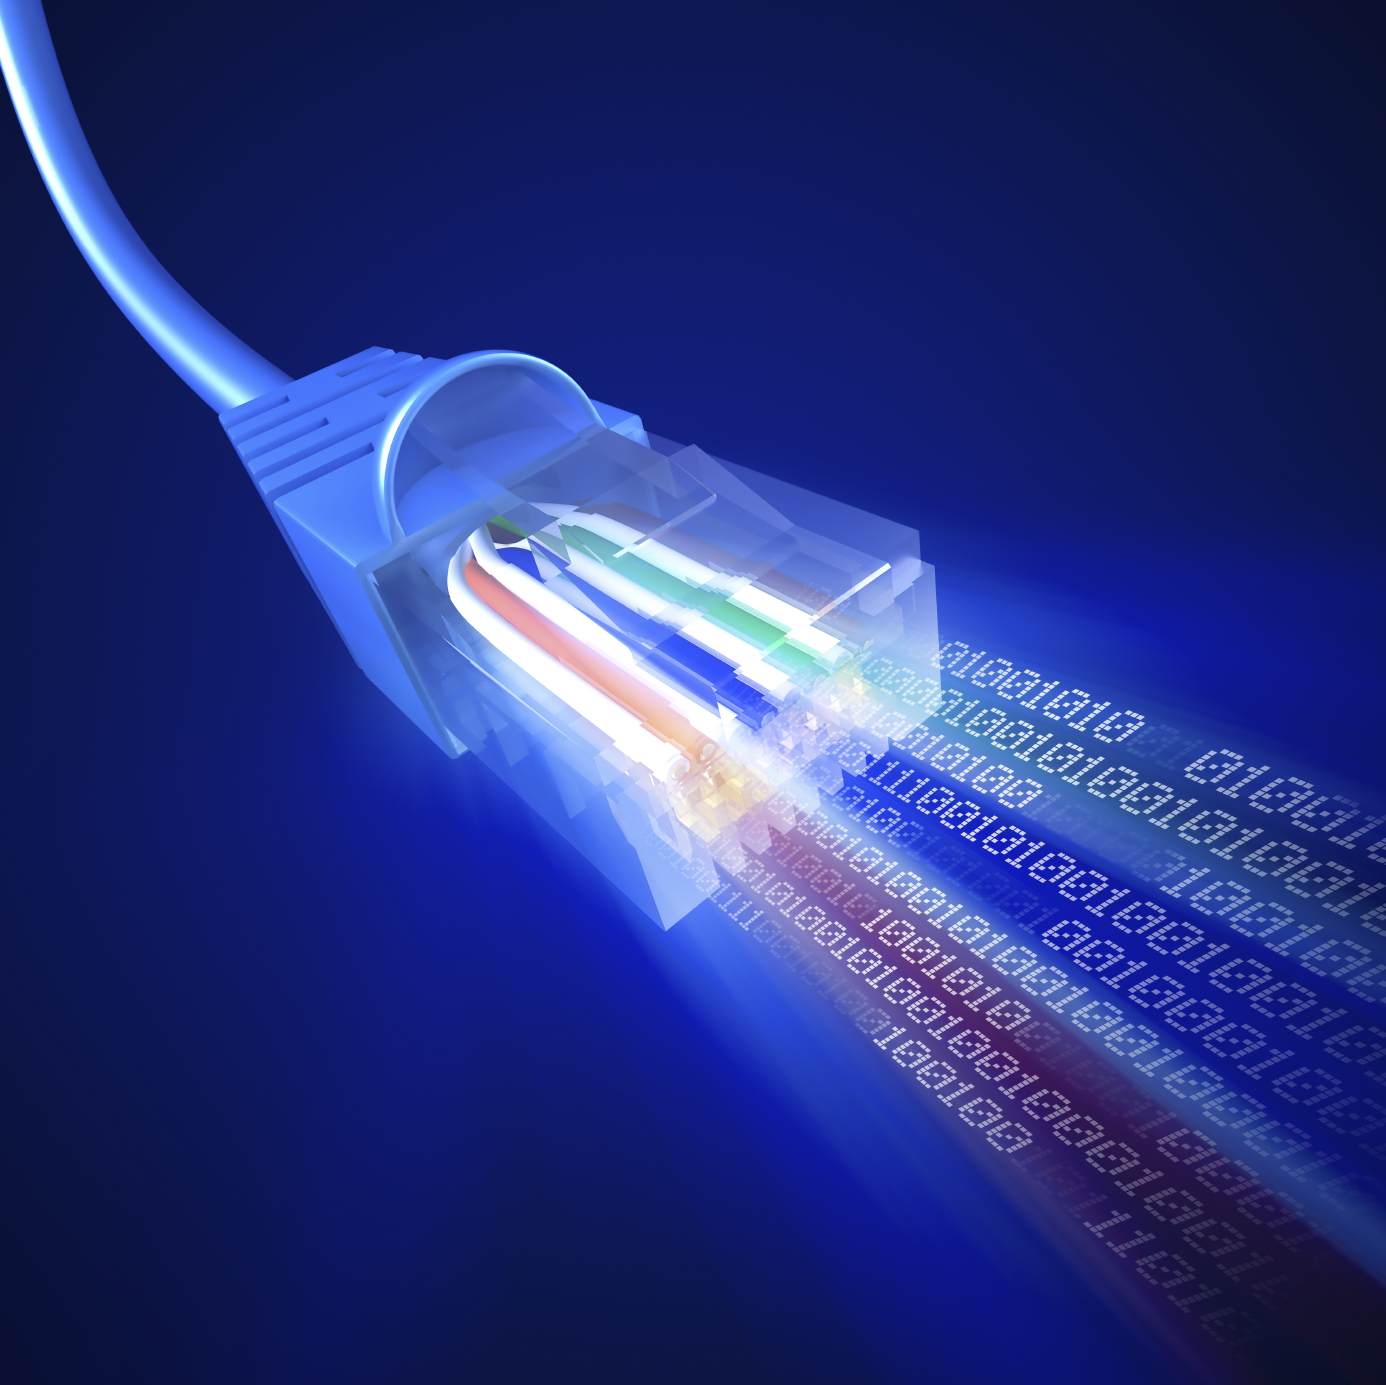 High-speed broadband internet penetration